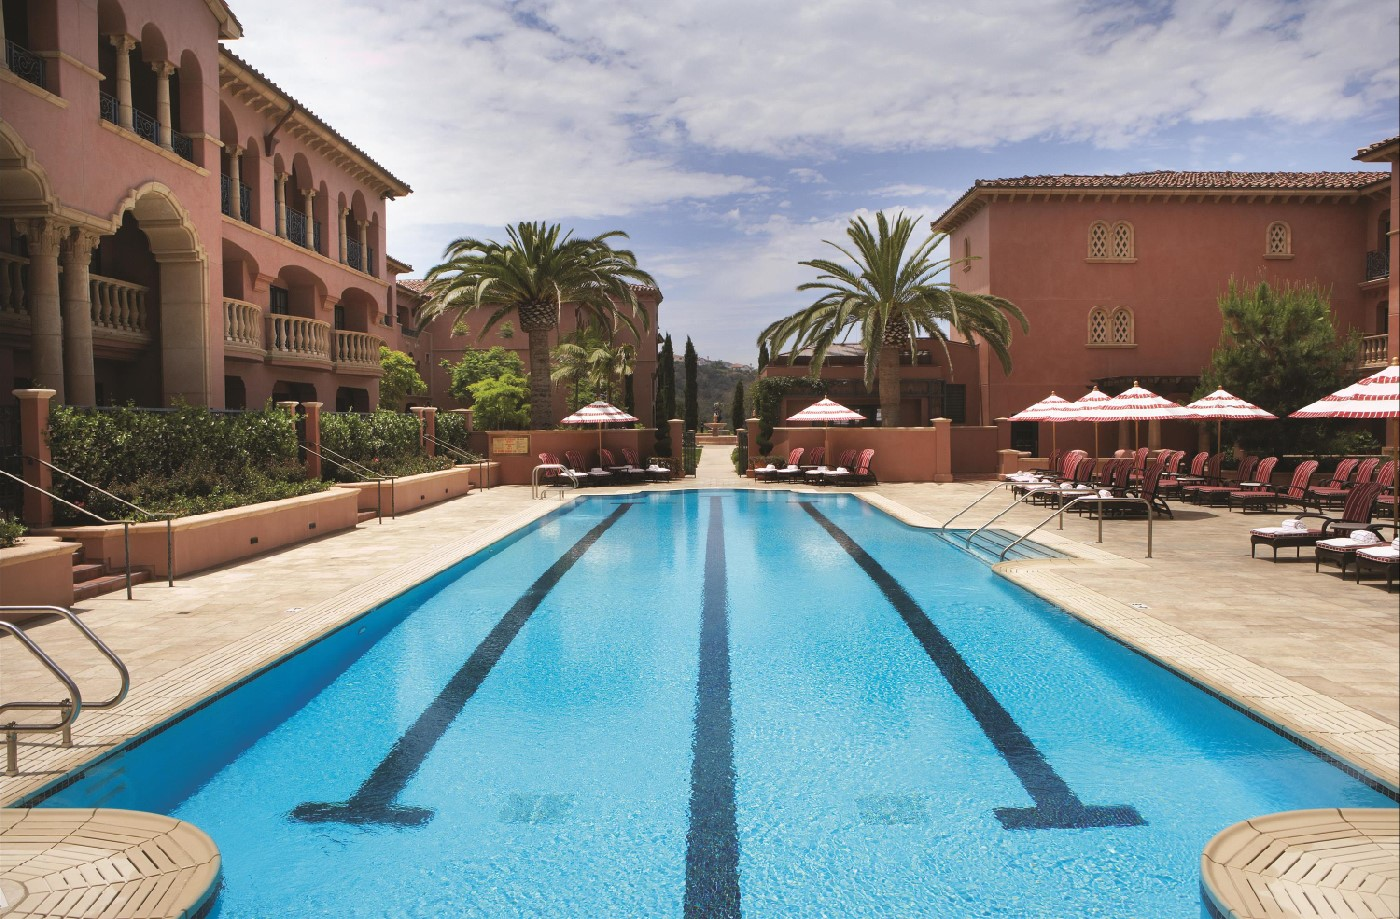 Grand Del Mar relaxation pool.